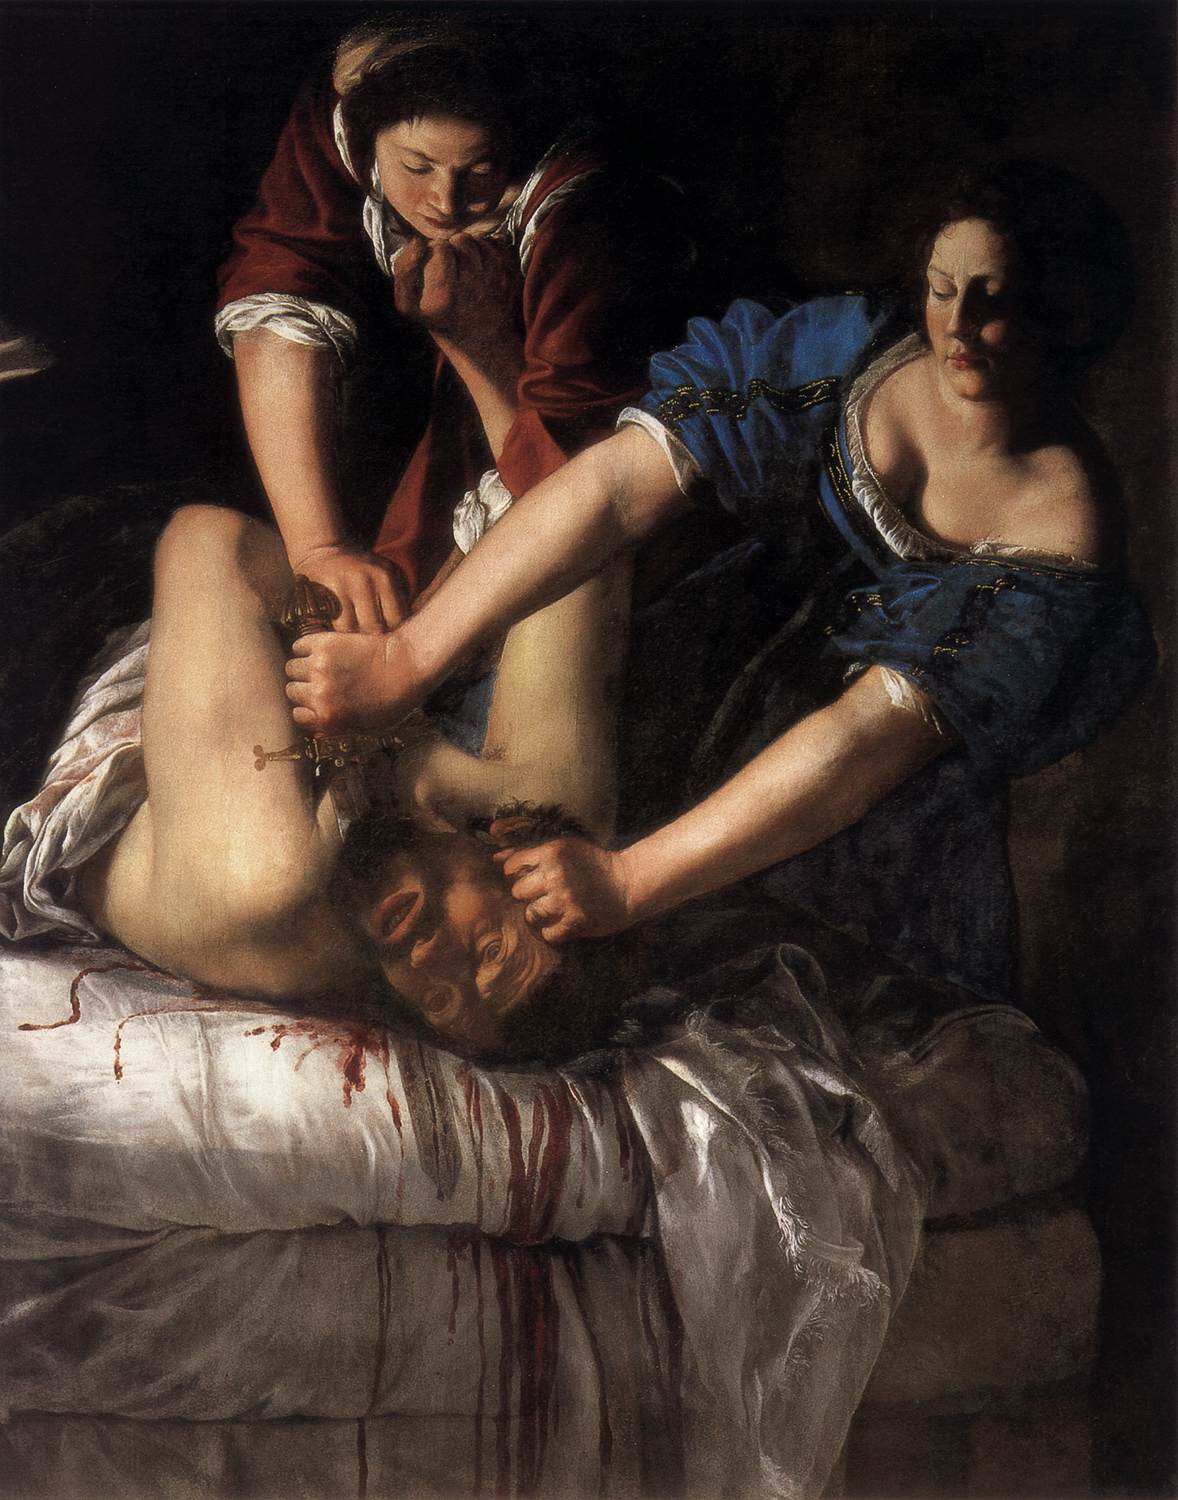 Judith and the maidservant with the head of holofernes is from what story